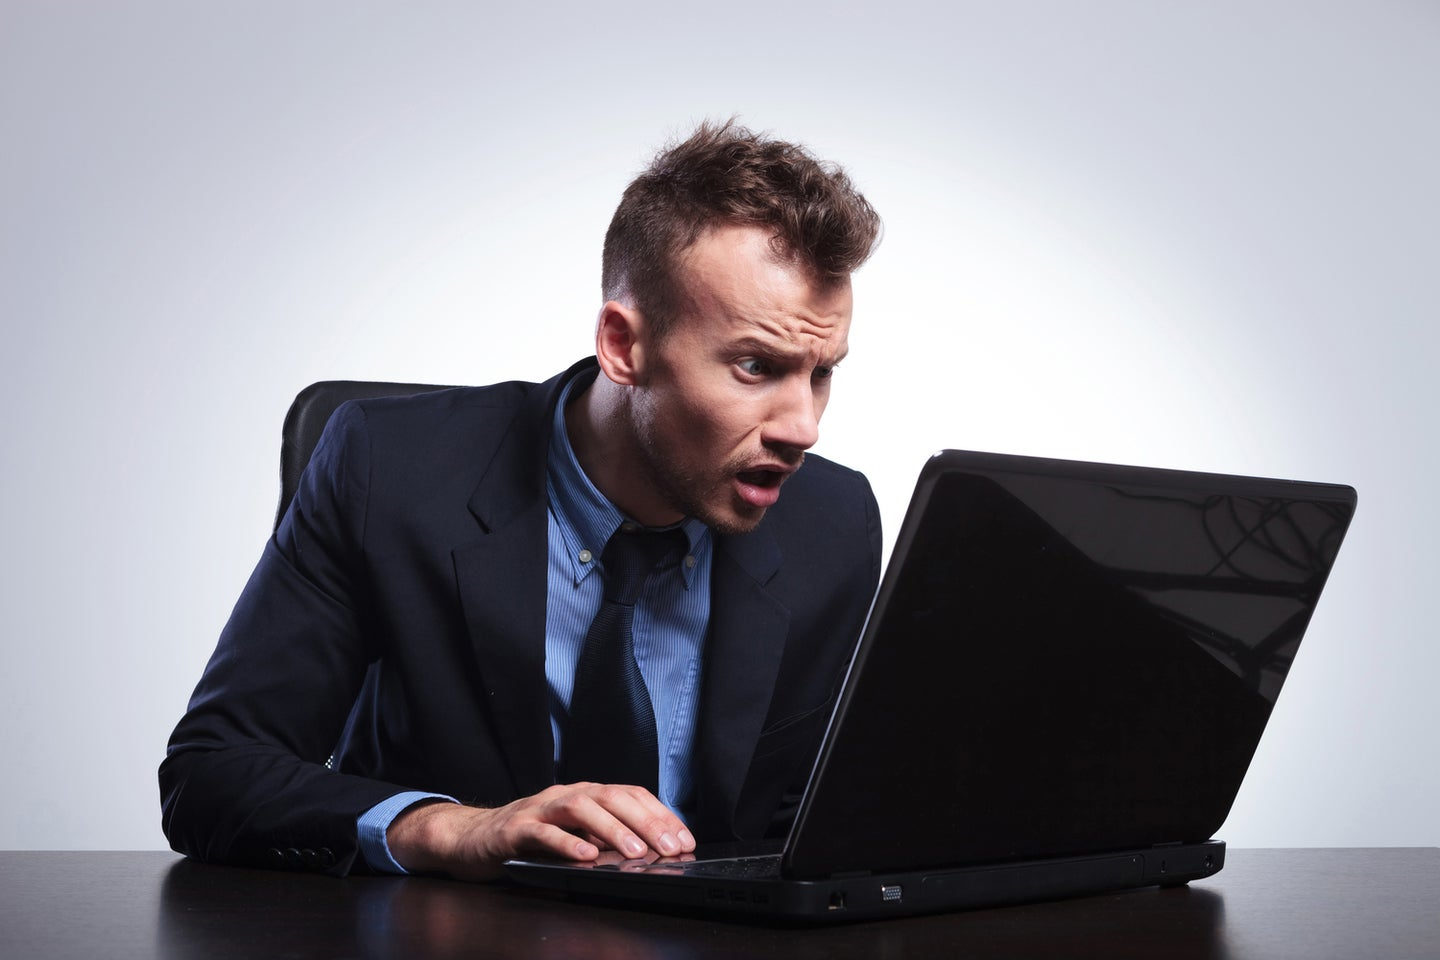 Man sitting at his laptop and looking surprised while reading something.